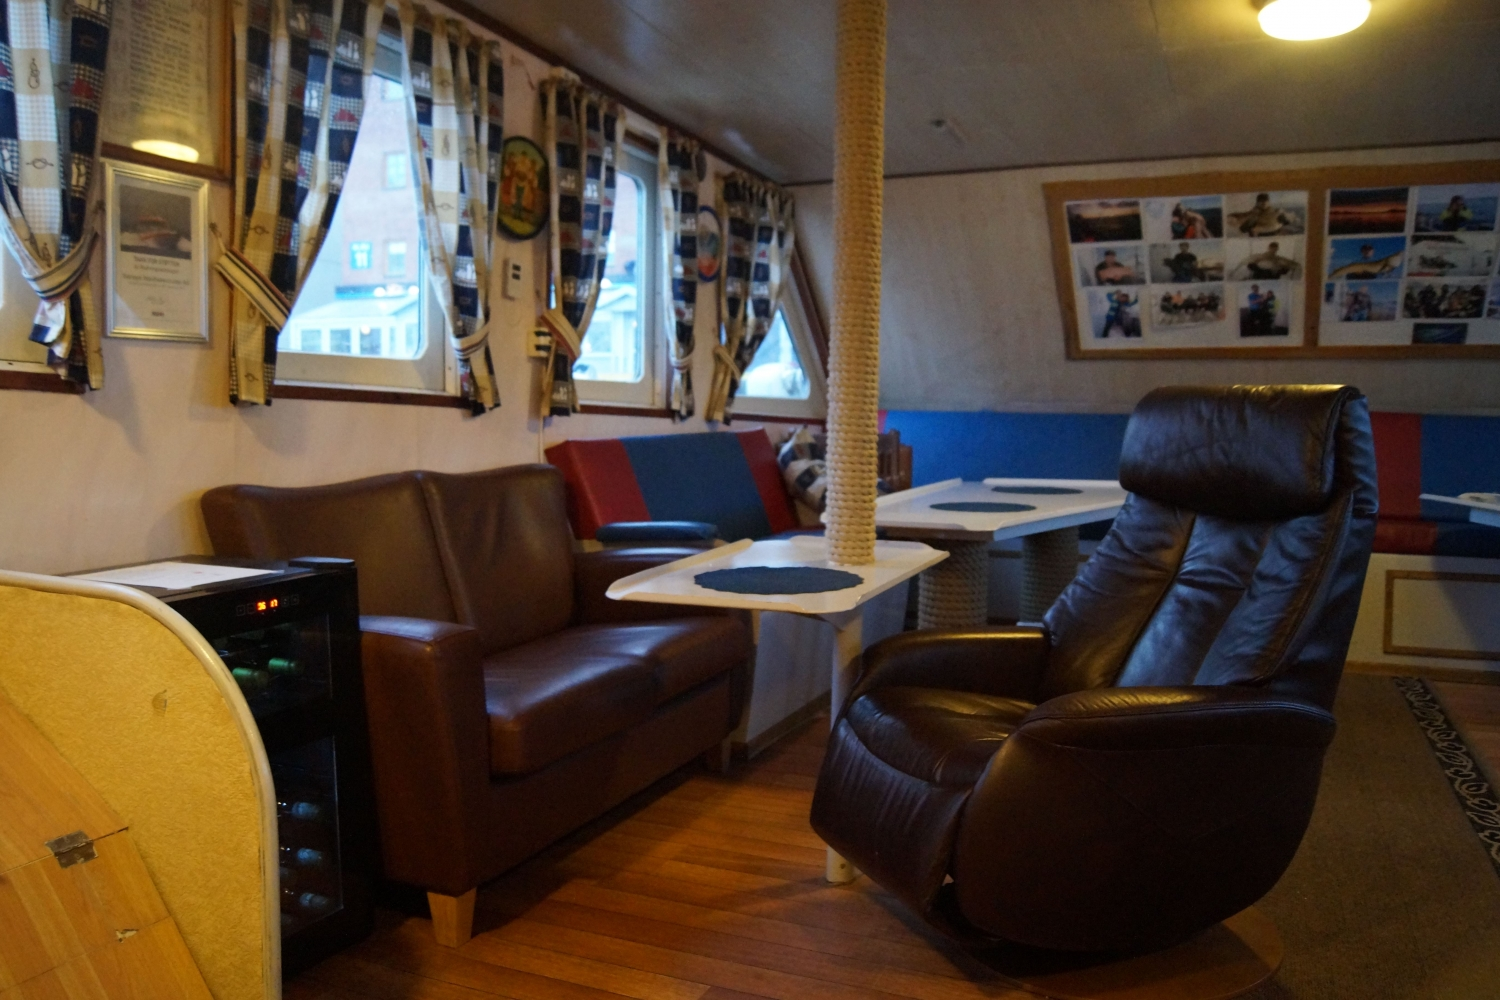 Inside of the catamaran MB Havcruise